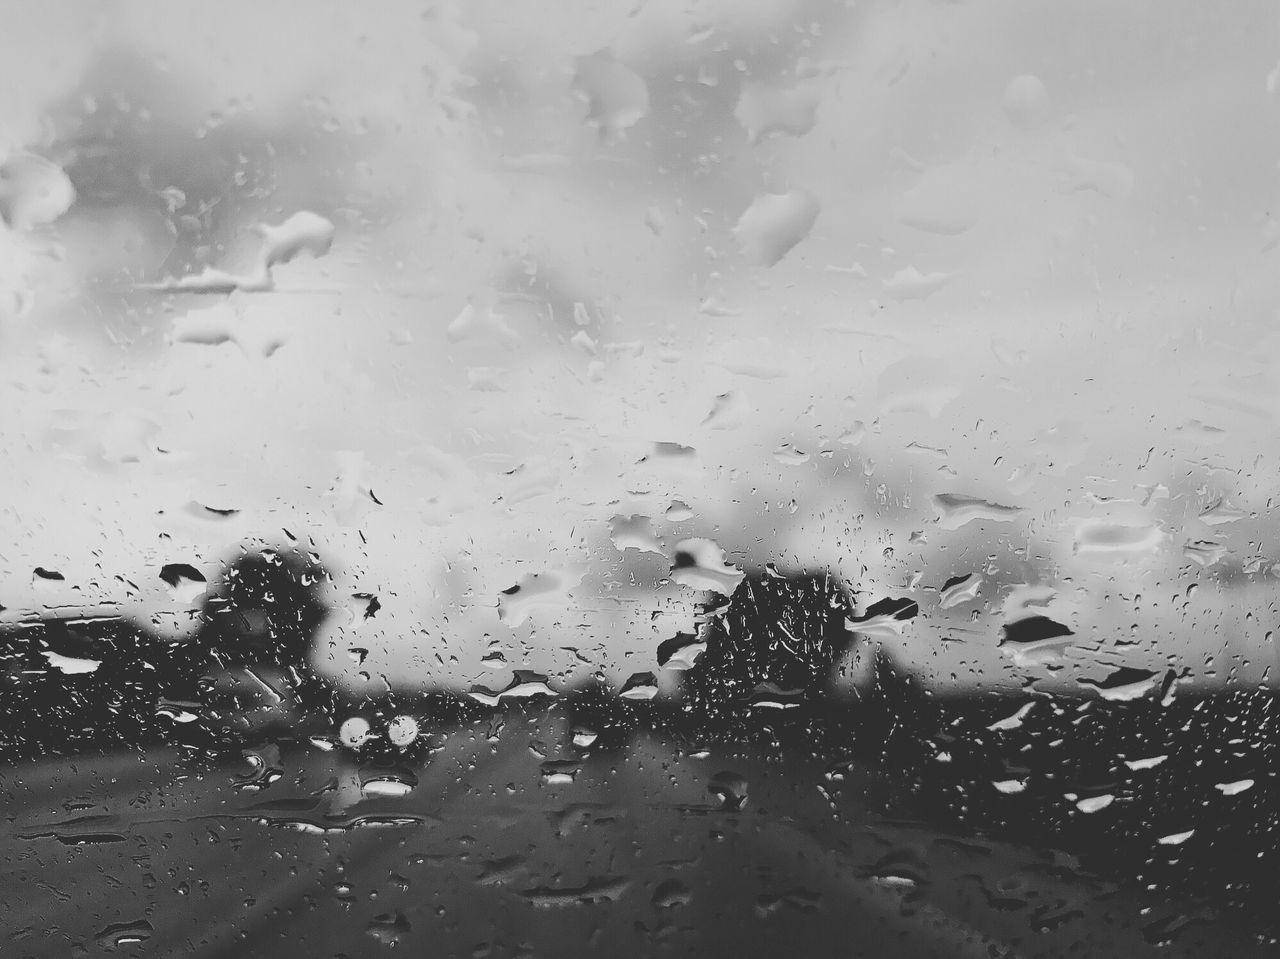 transparent, drop, glass - material, wet, window, rain, rainy season, raindrop, weather, water, backgrounds, no people, full frame, indoors, transportation, car, land vehicle, day, looking through window, car interior, close-up, nature, sky, freshness, airplane wing